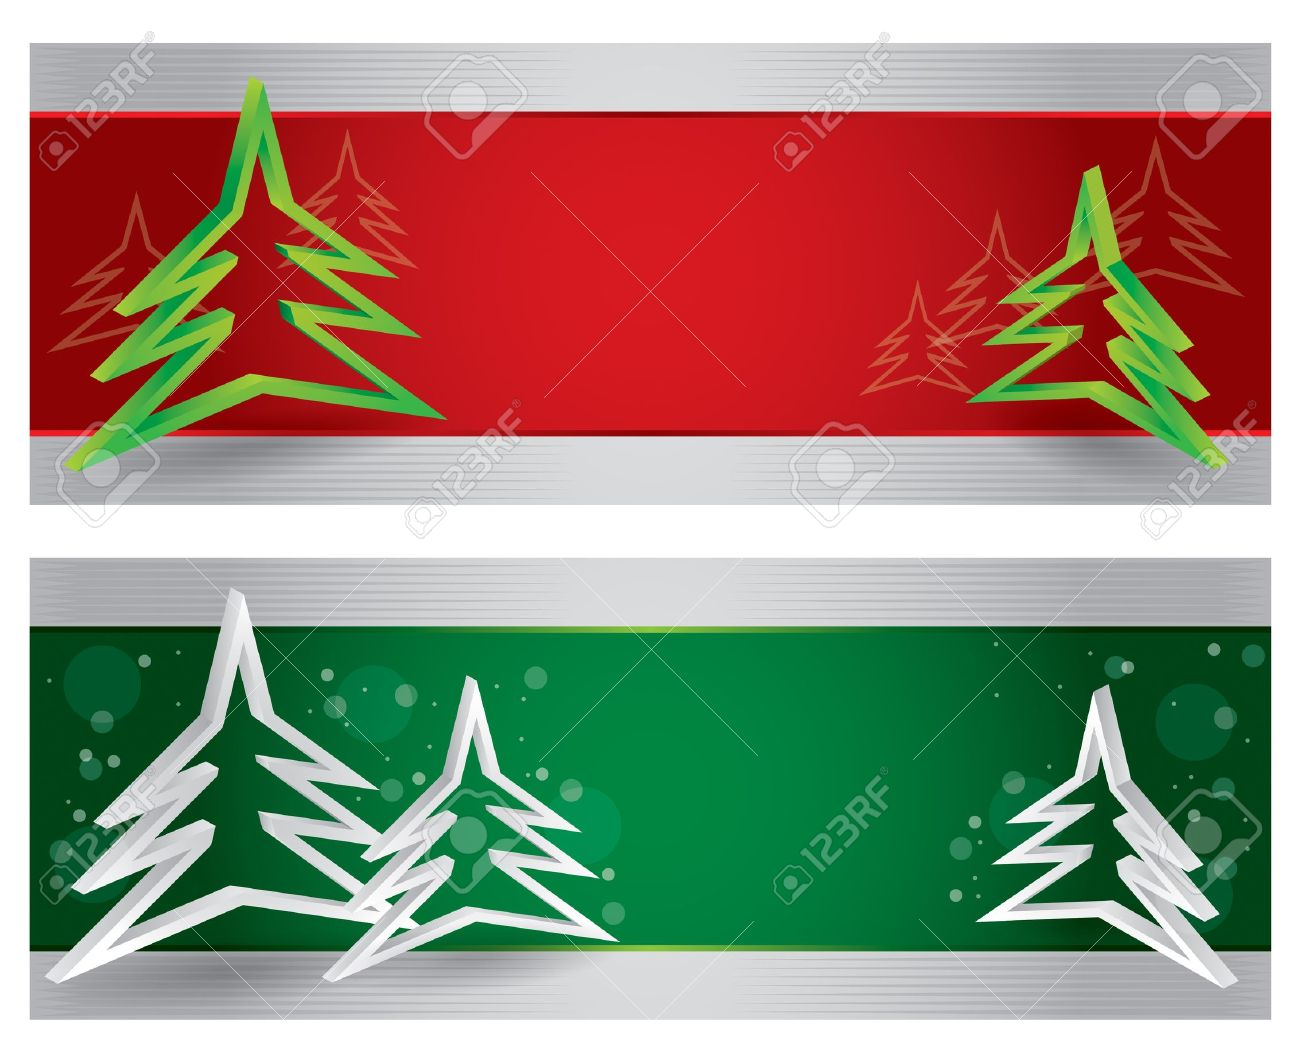 Merry Christmas Website Header And Banner With Abstract Background ...